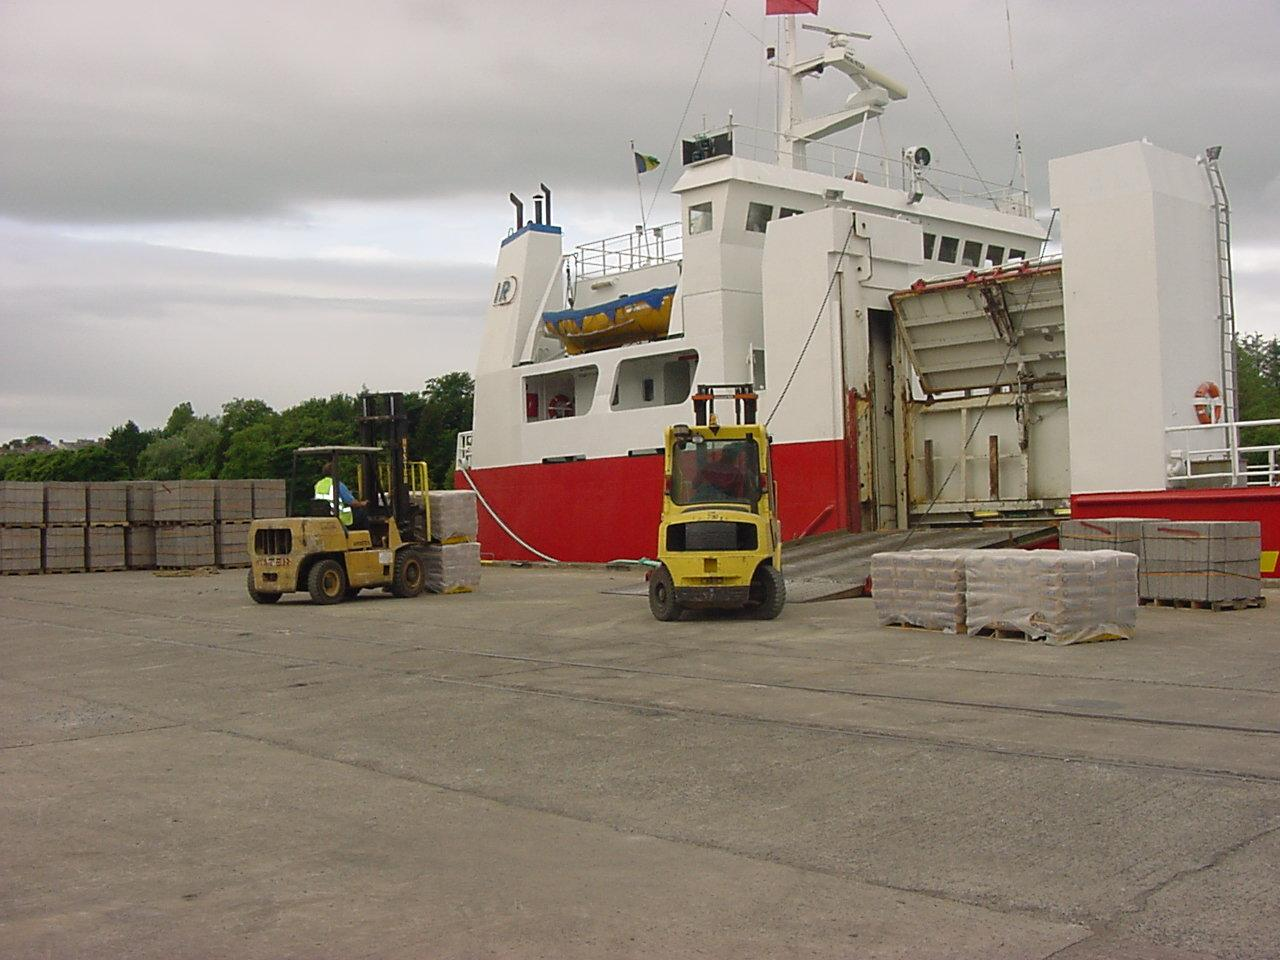 Northern Ireland Commercial Shipping